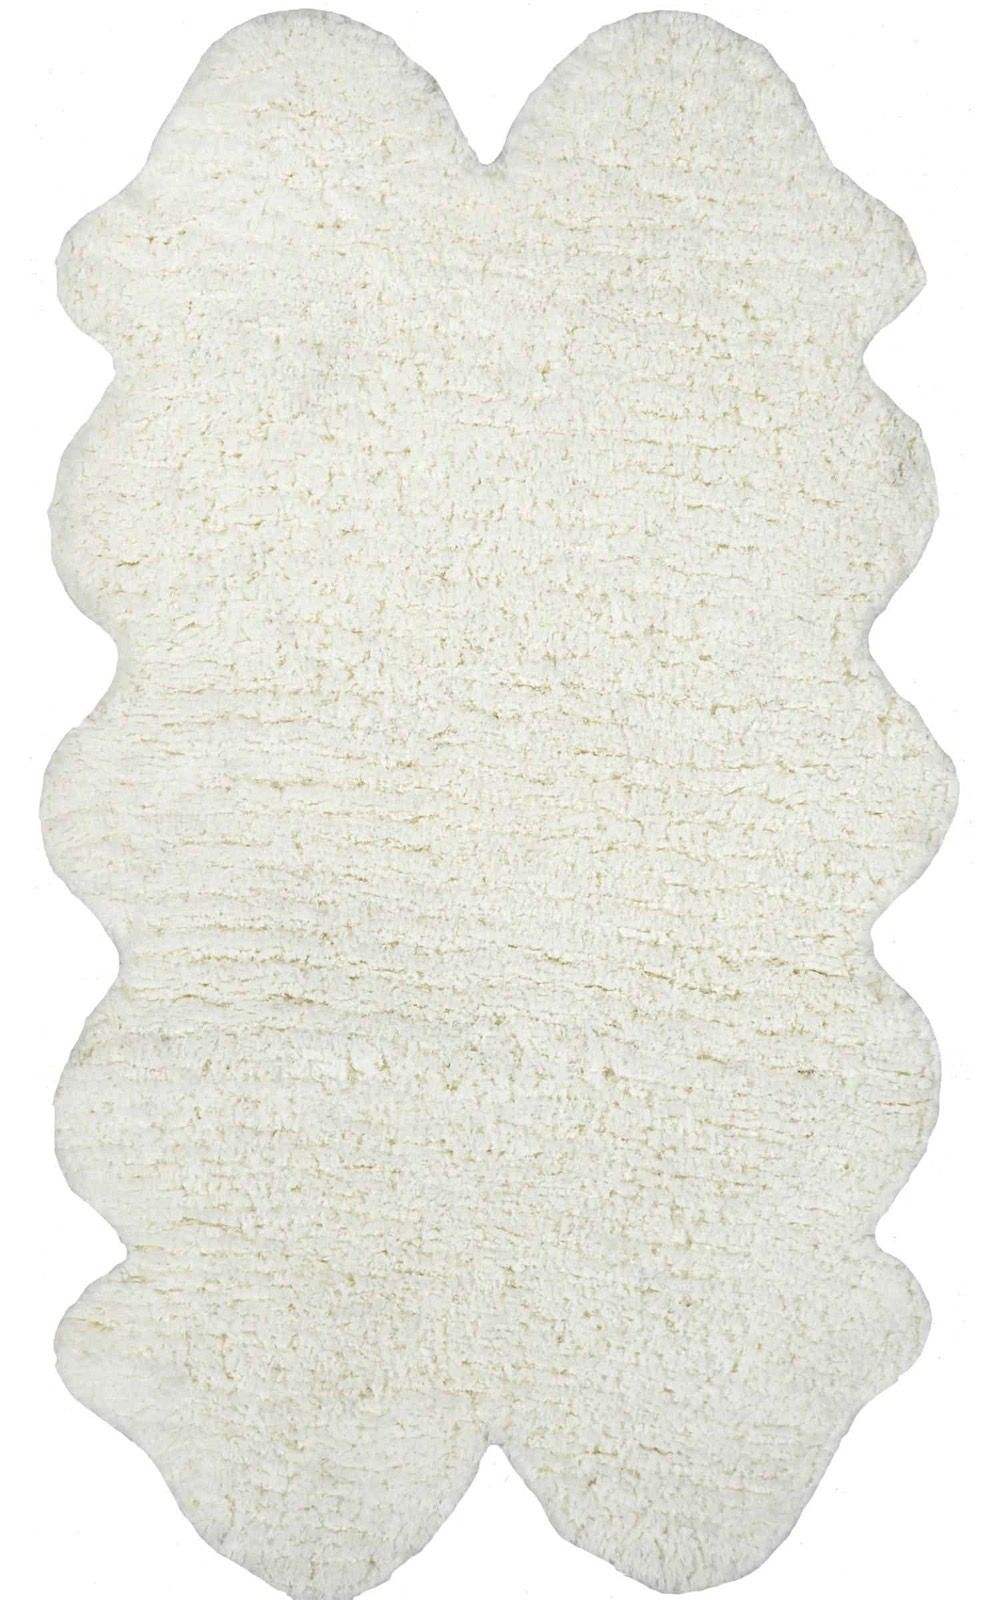 nuloom quarto pelt faux sheepskin animal inspirations area rug collection